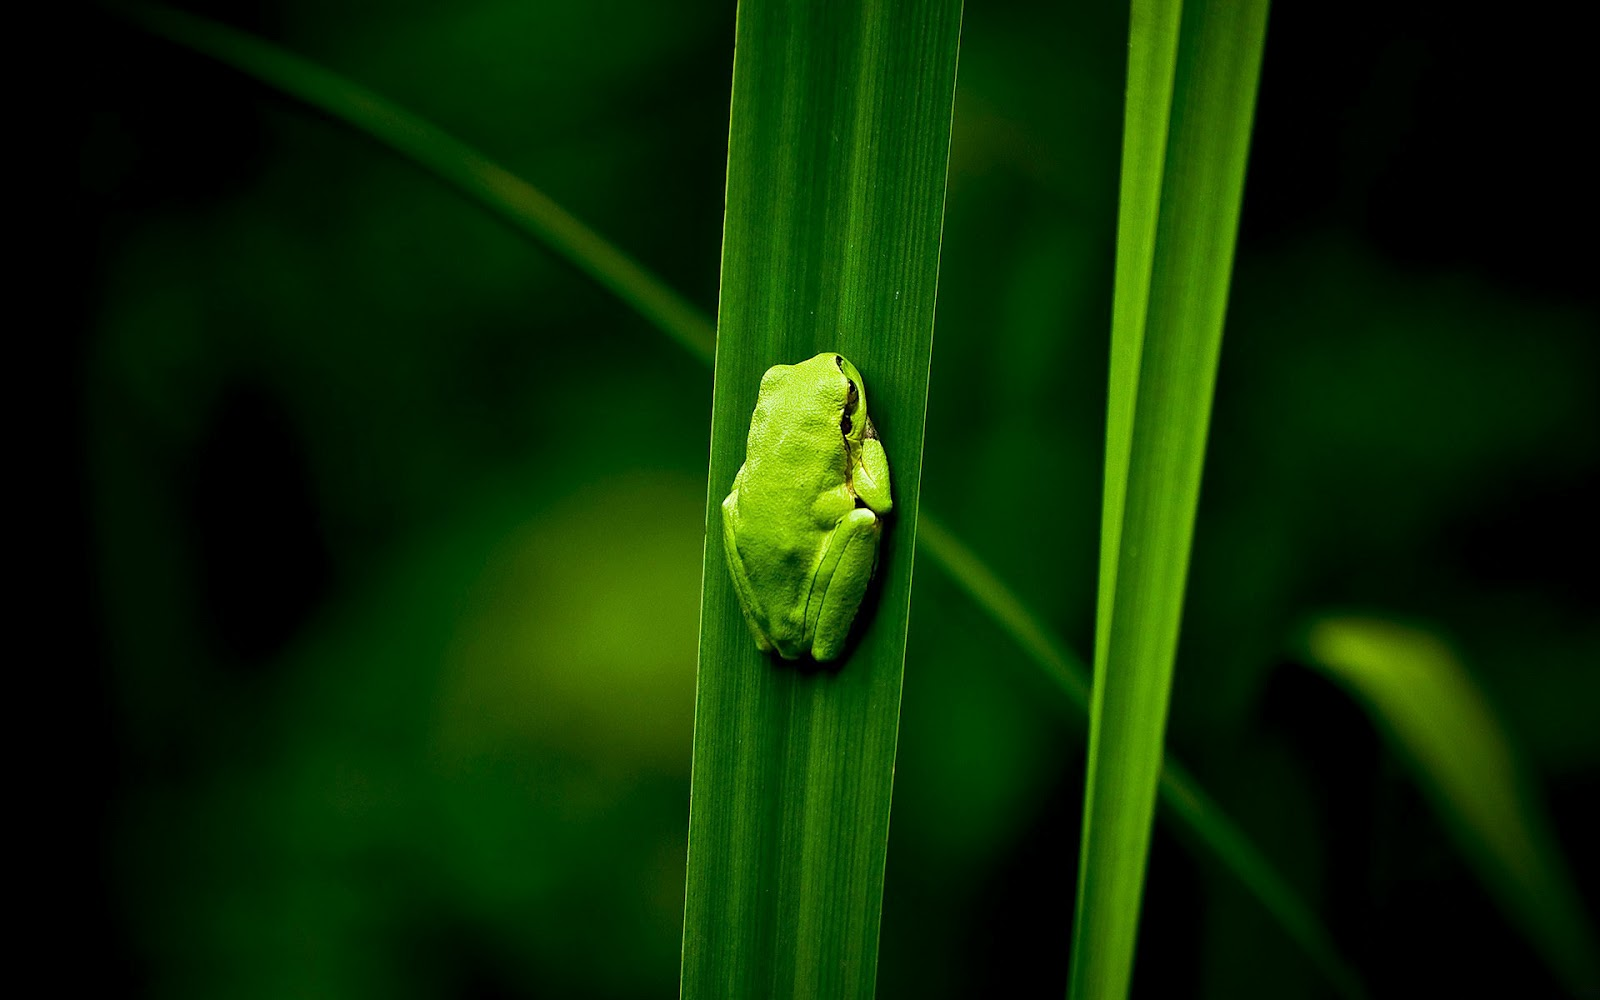 Green Frog Sleep Wallpaper